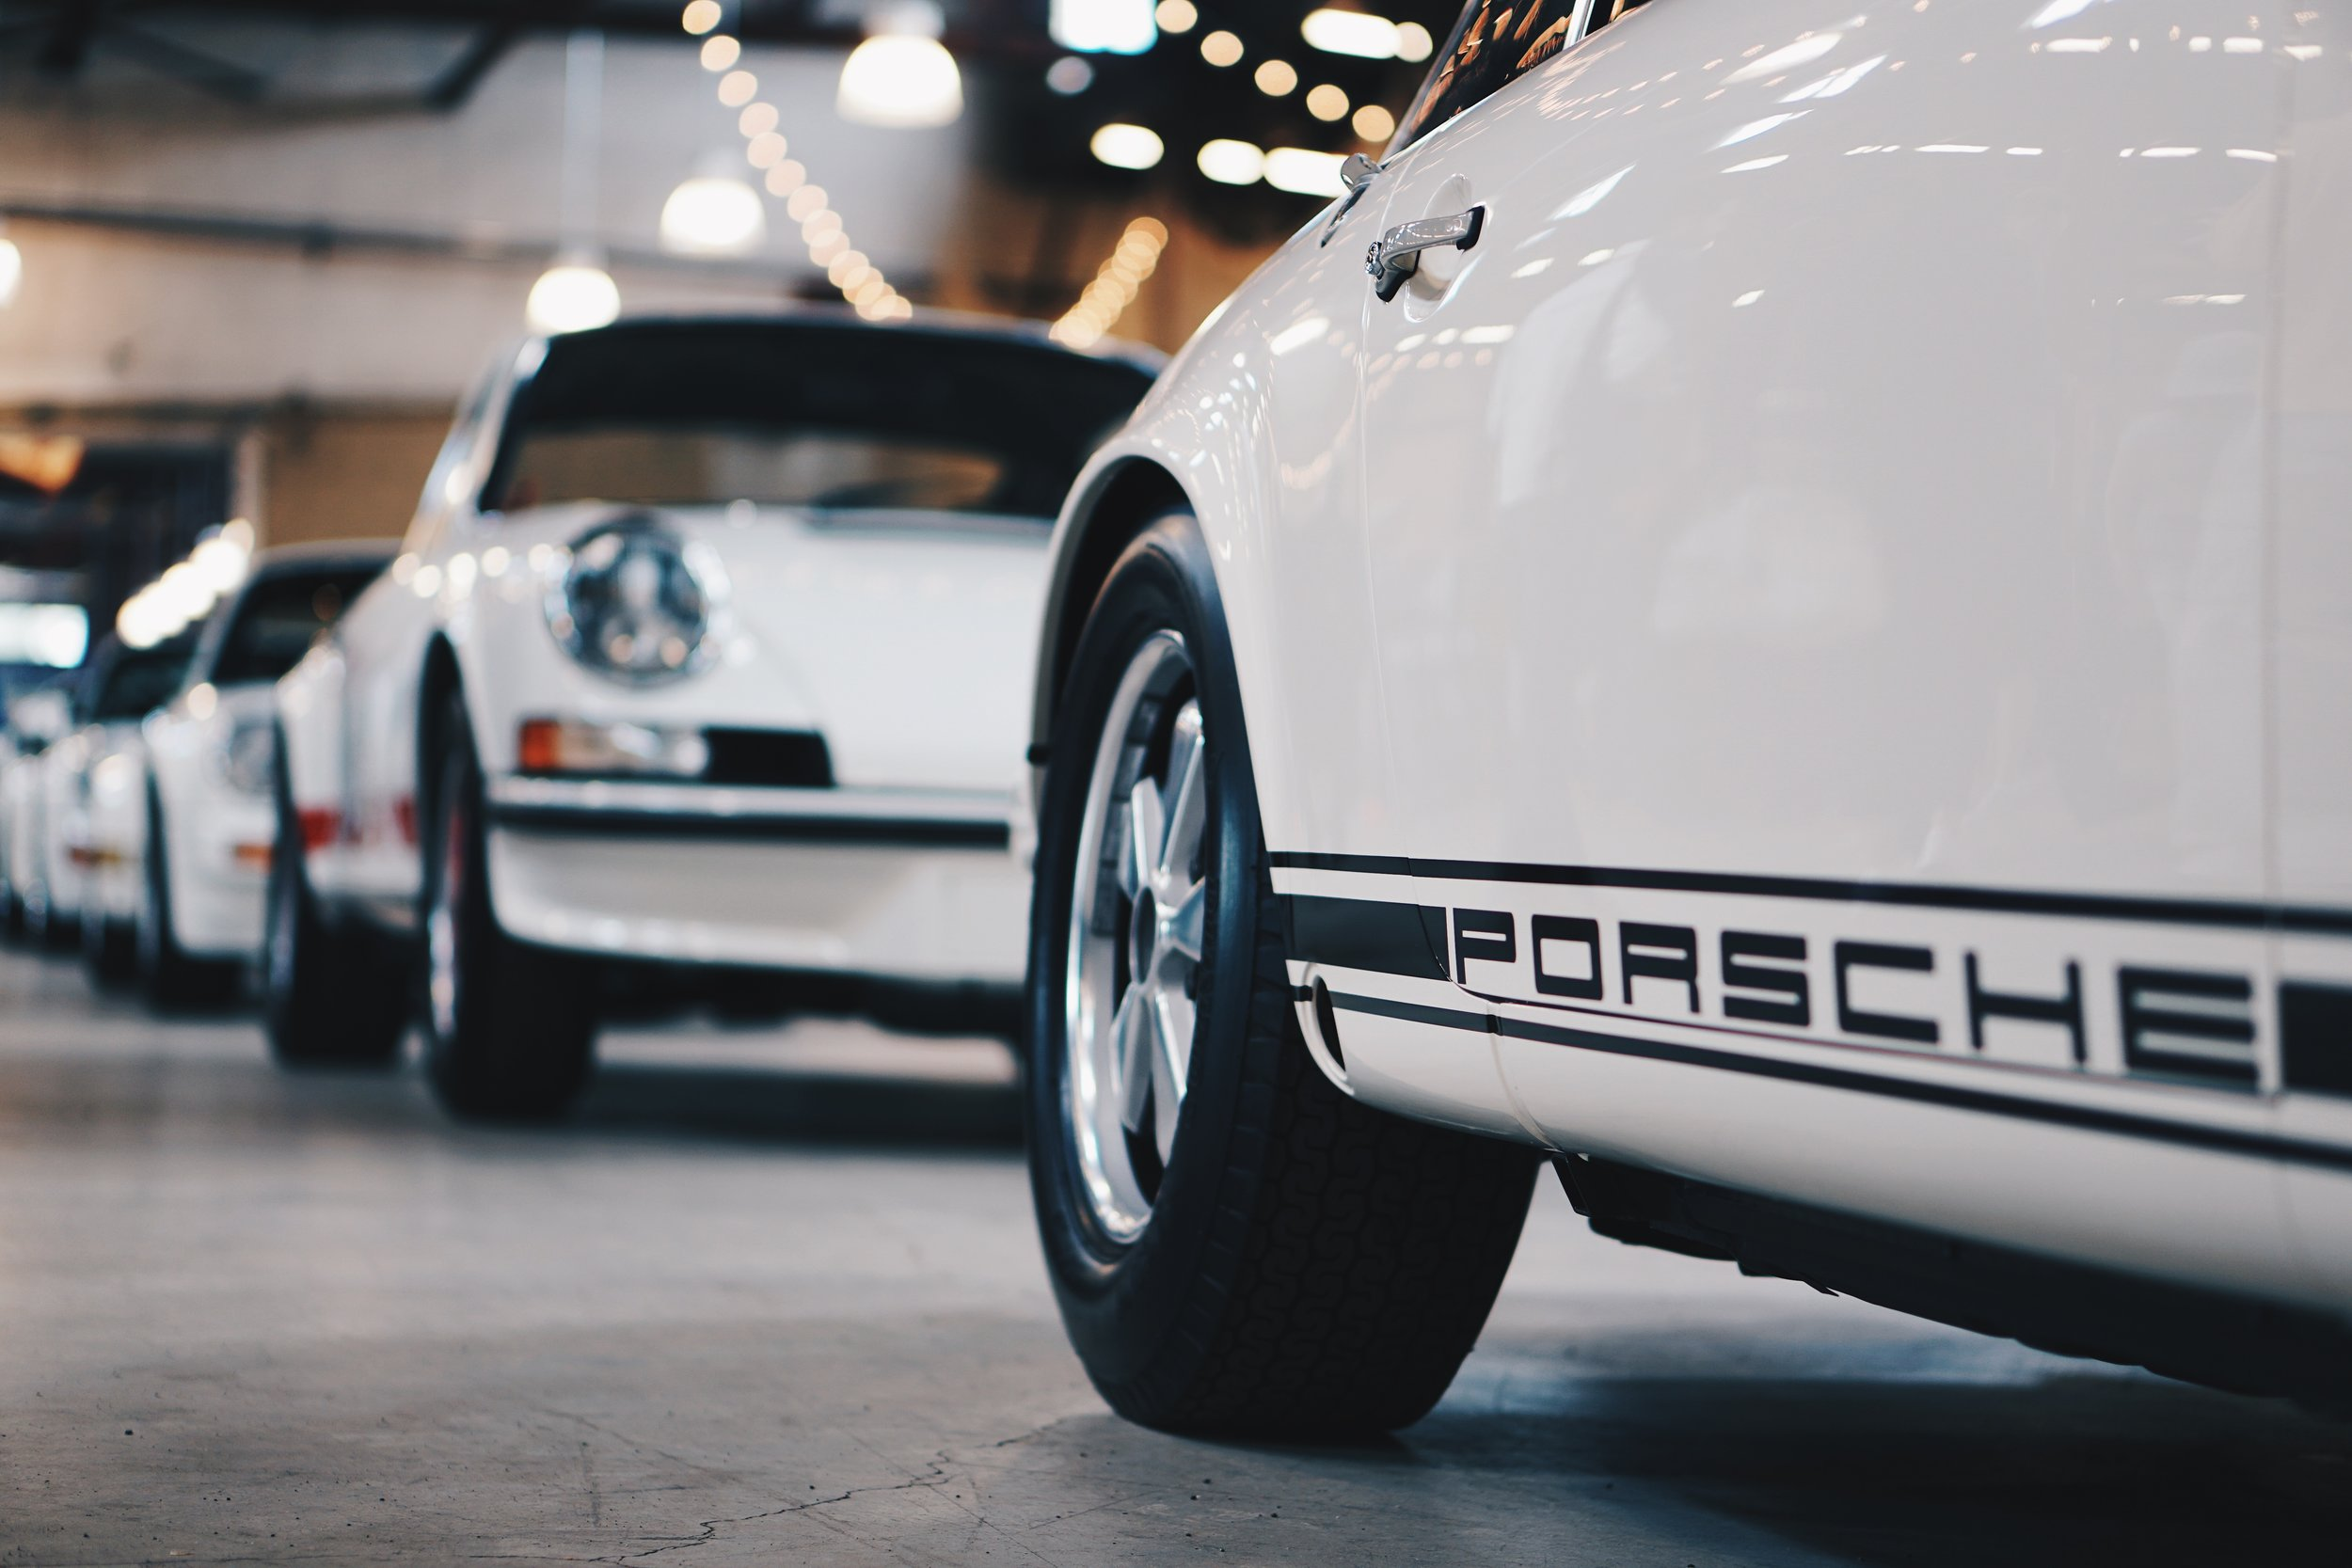 Porsche's for miles and miles...